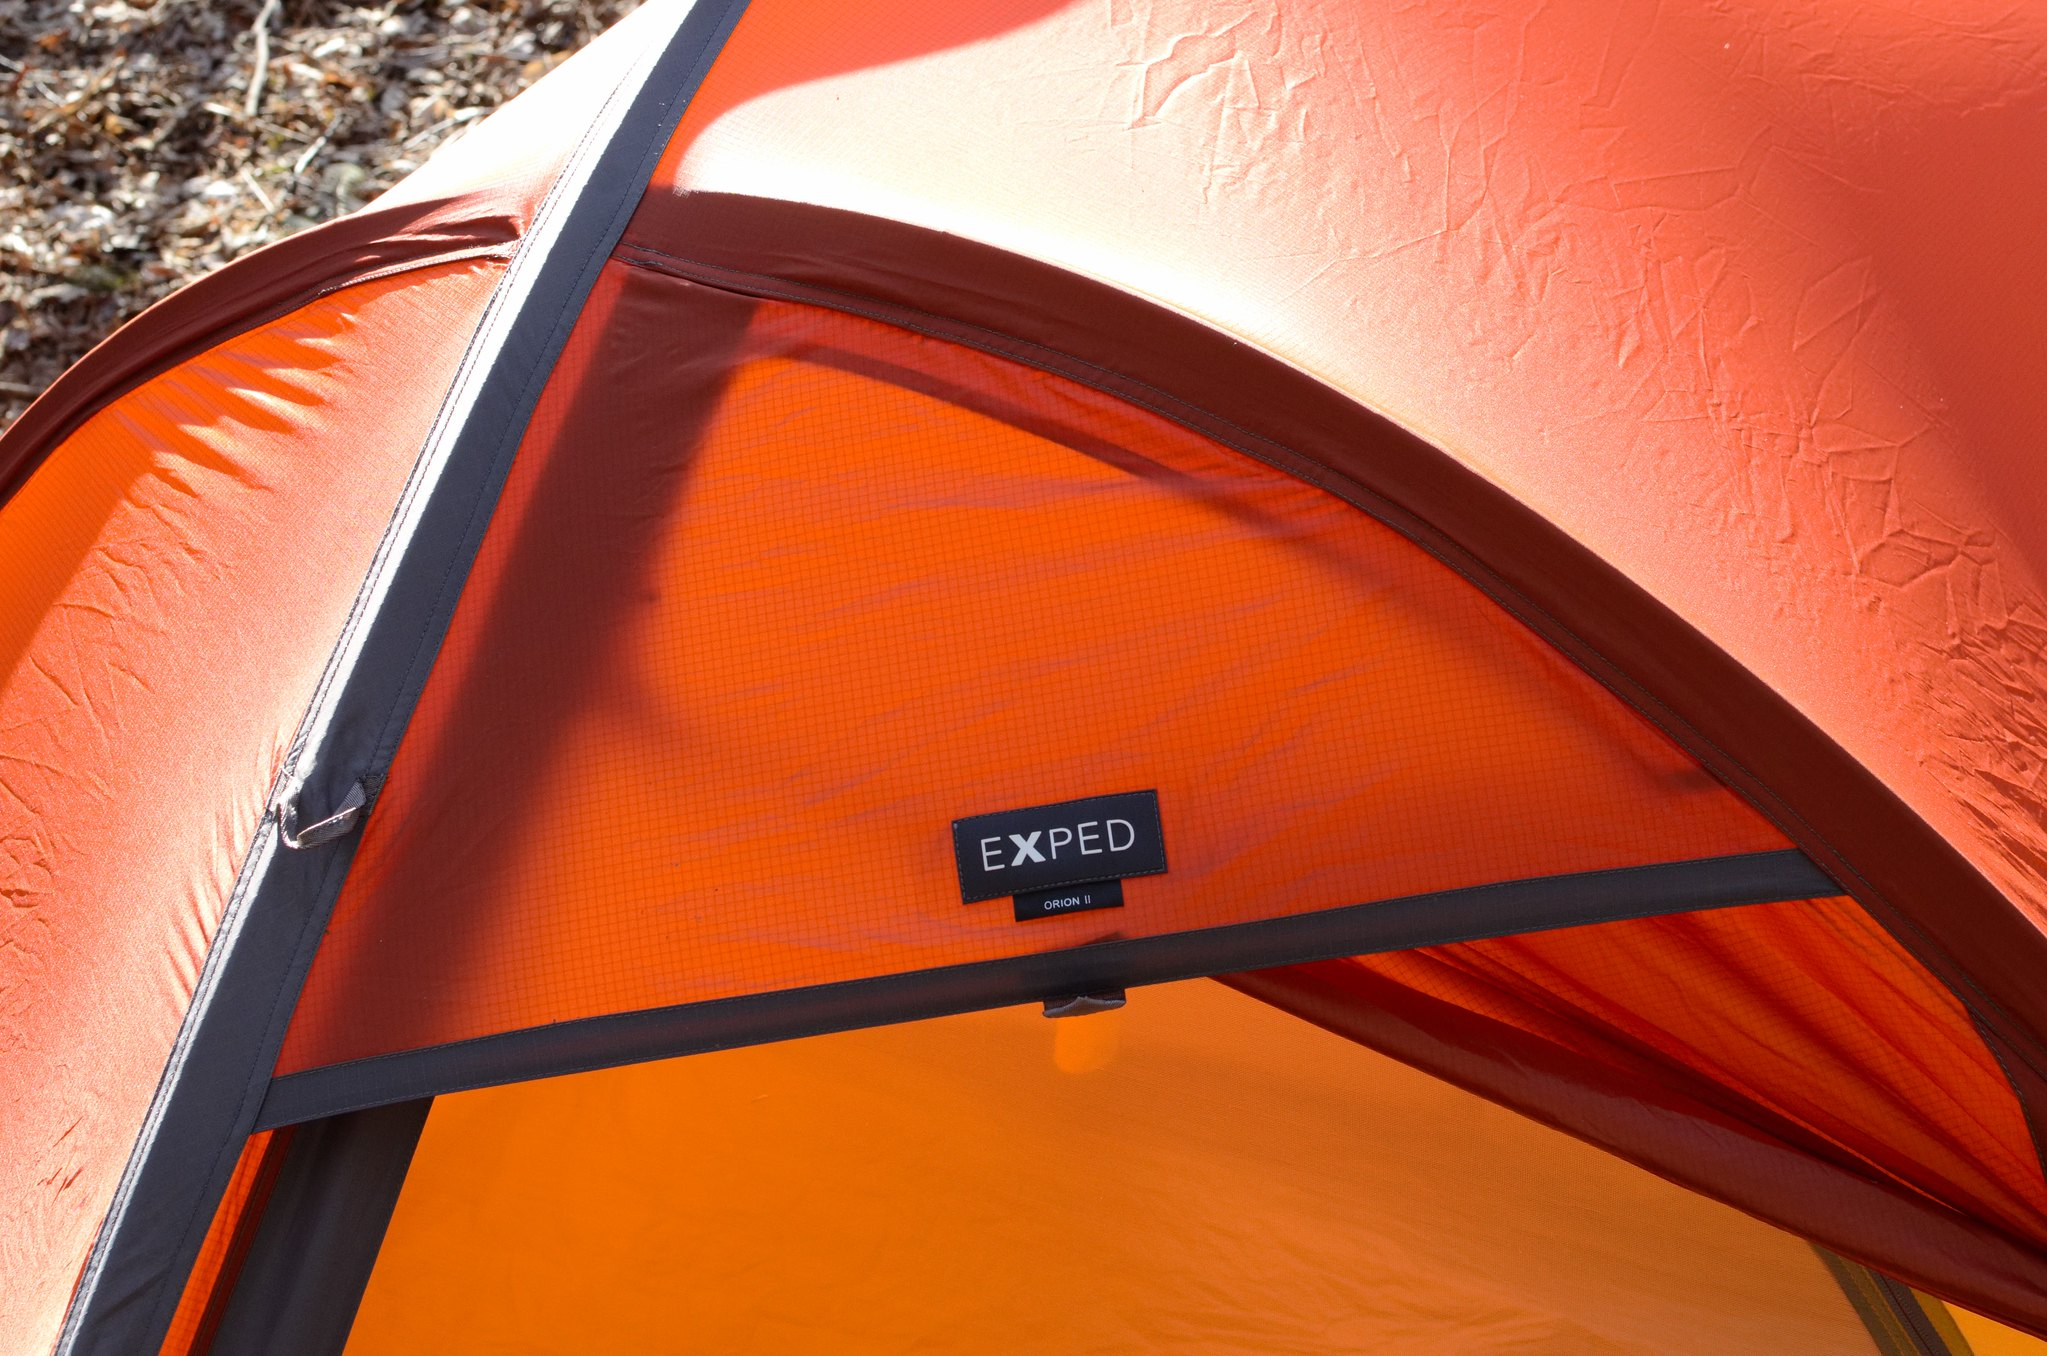 I was initially pretty skeptical about sleeves as I had violent flashbacks to cheap fiberglass tents ... & 6-Month Review: The Exped Orion II 4-Season Tent u2013 Max The Cyclist